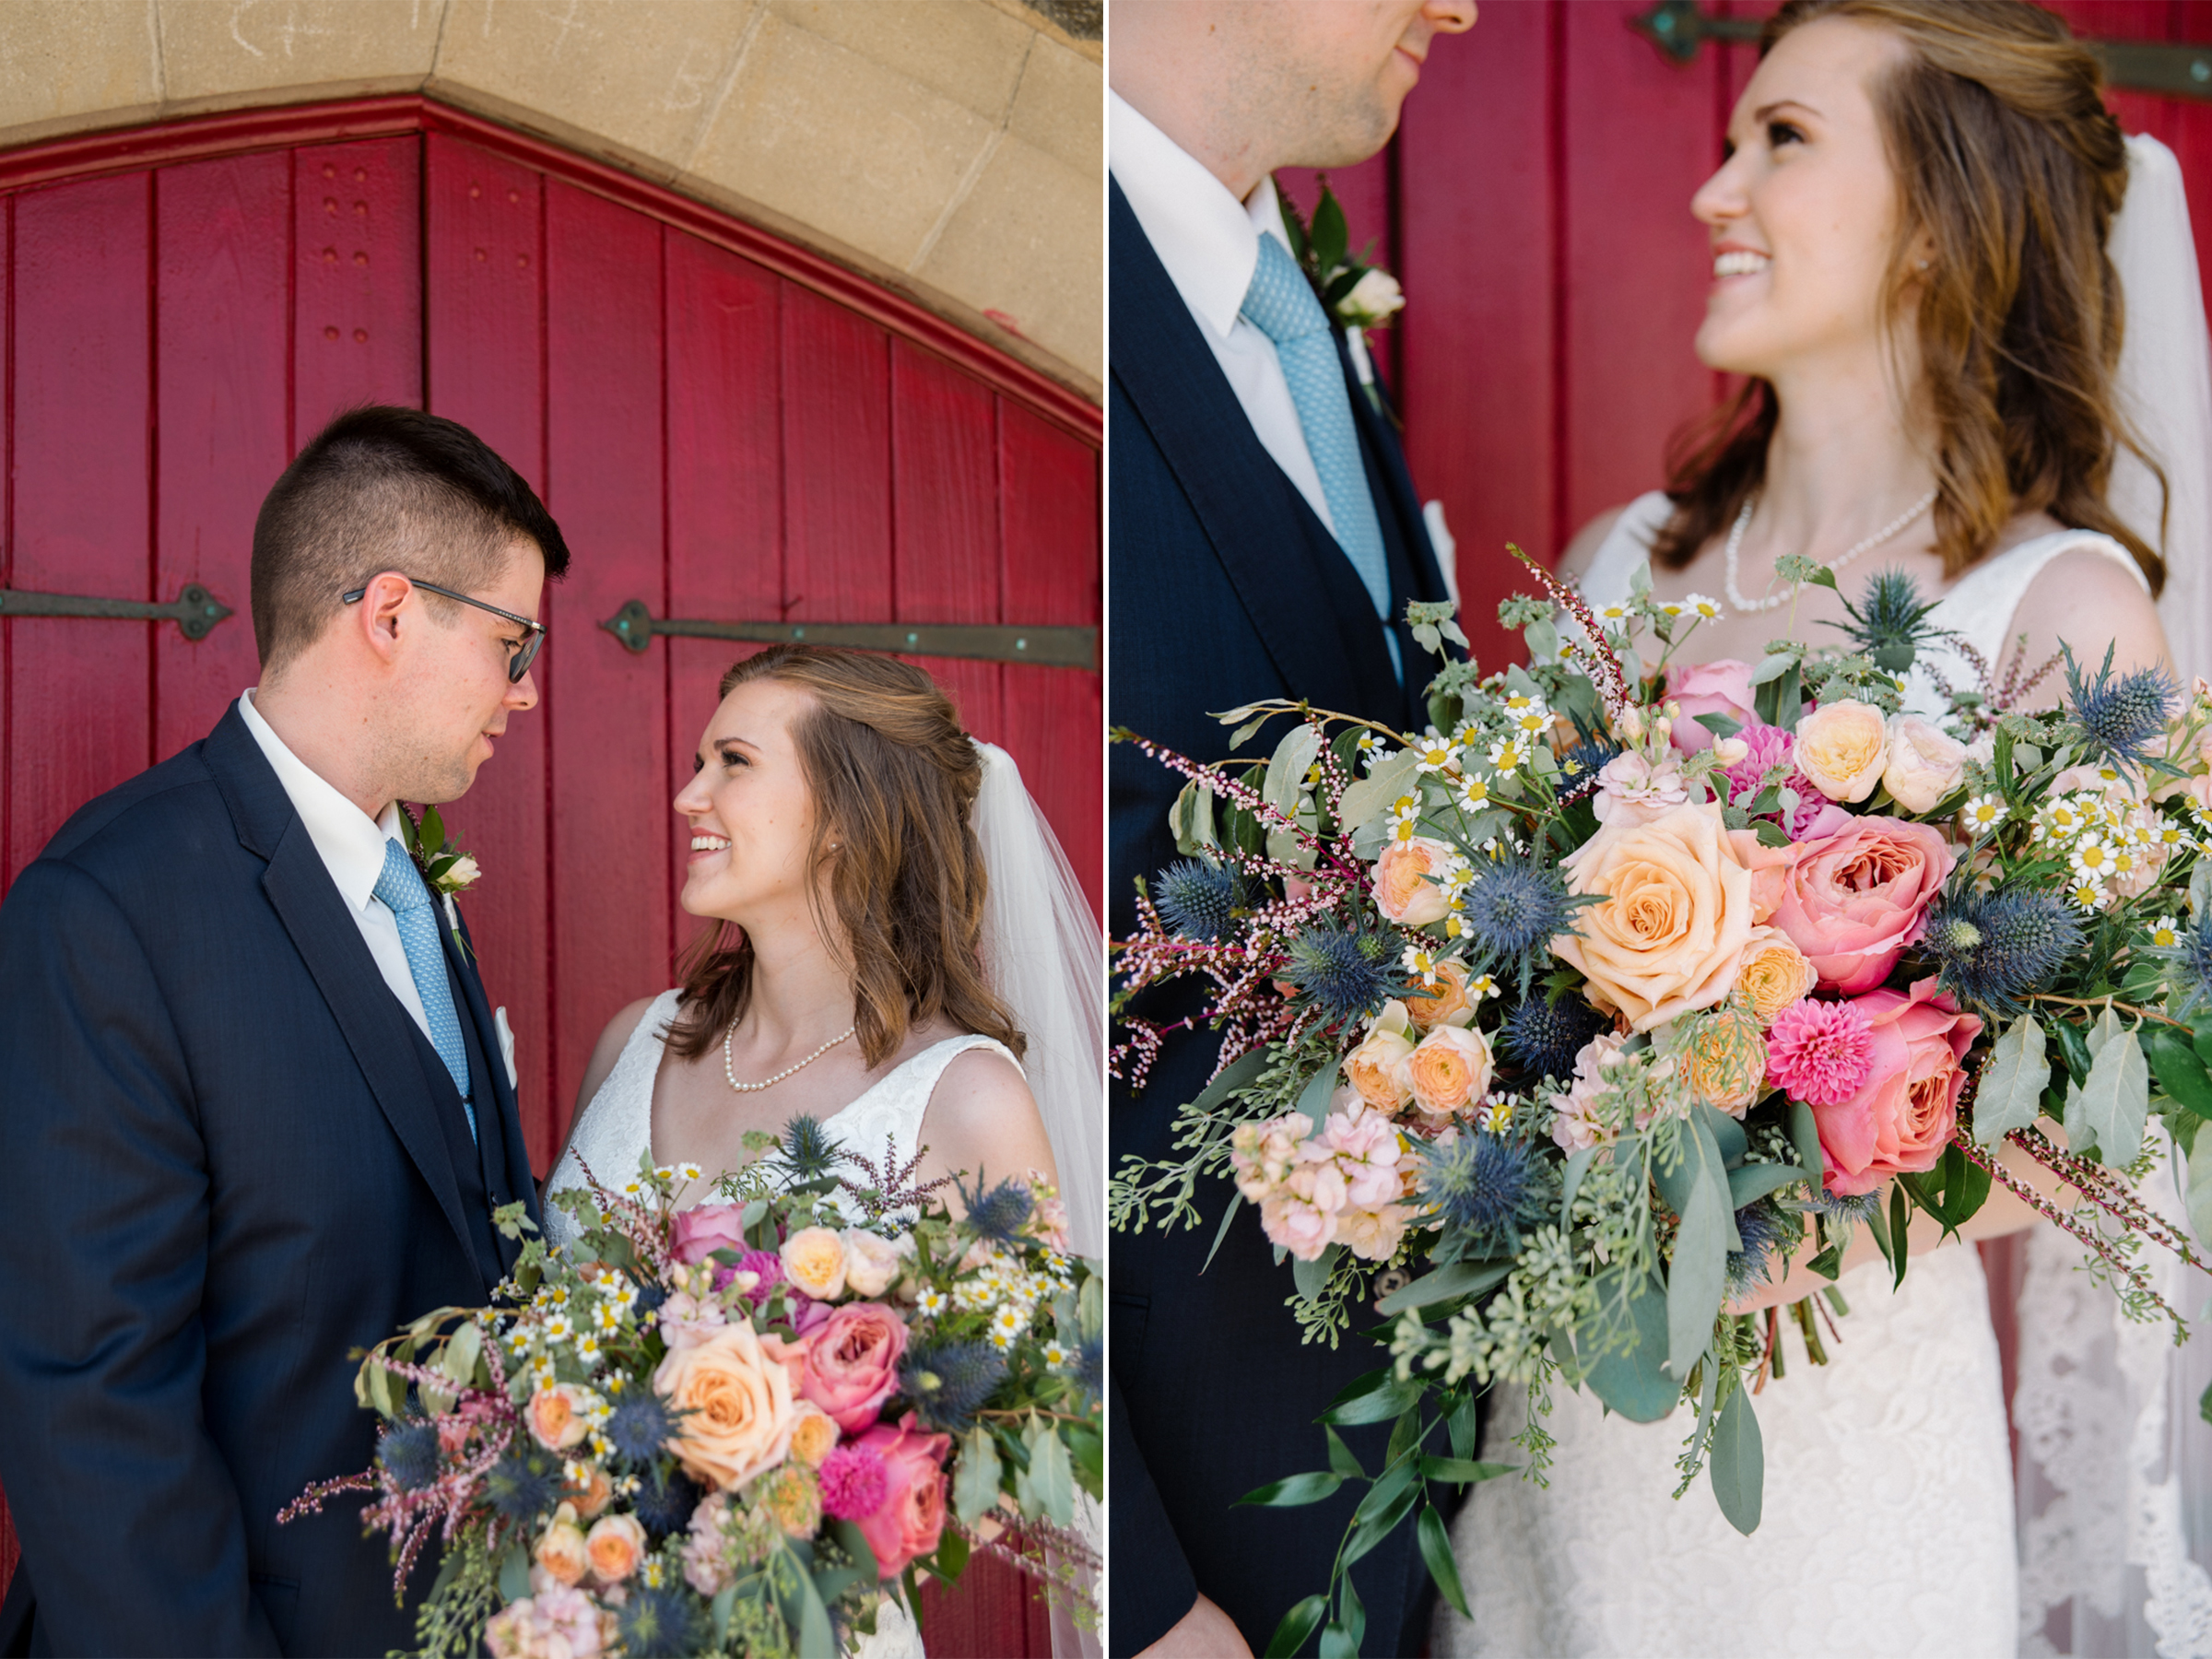 Carolyn+Dominic-Bride and Groom Portraits- A Garden Party LLC Bouquet- Congress Hall Wedding- Cape May New Jersey- Olivia Christina Photo-1-2.JPG